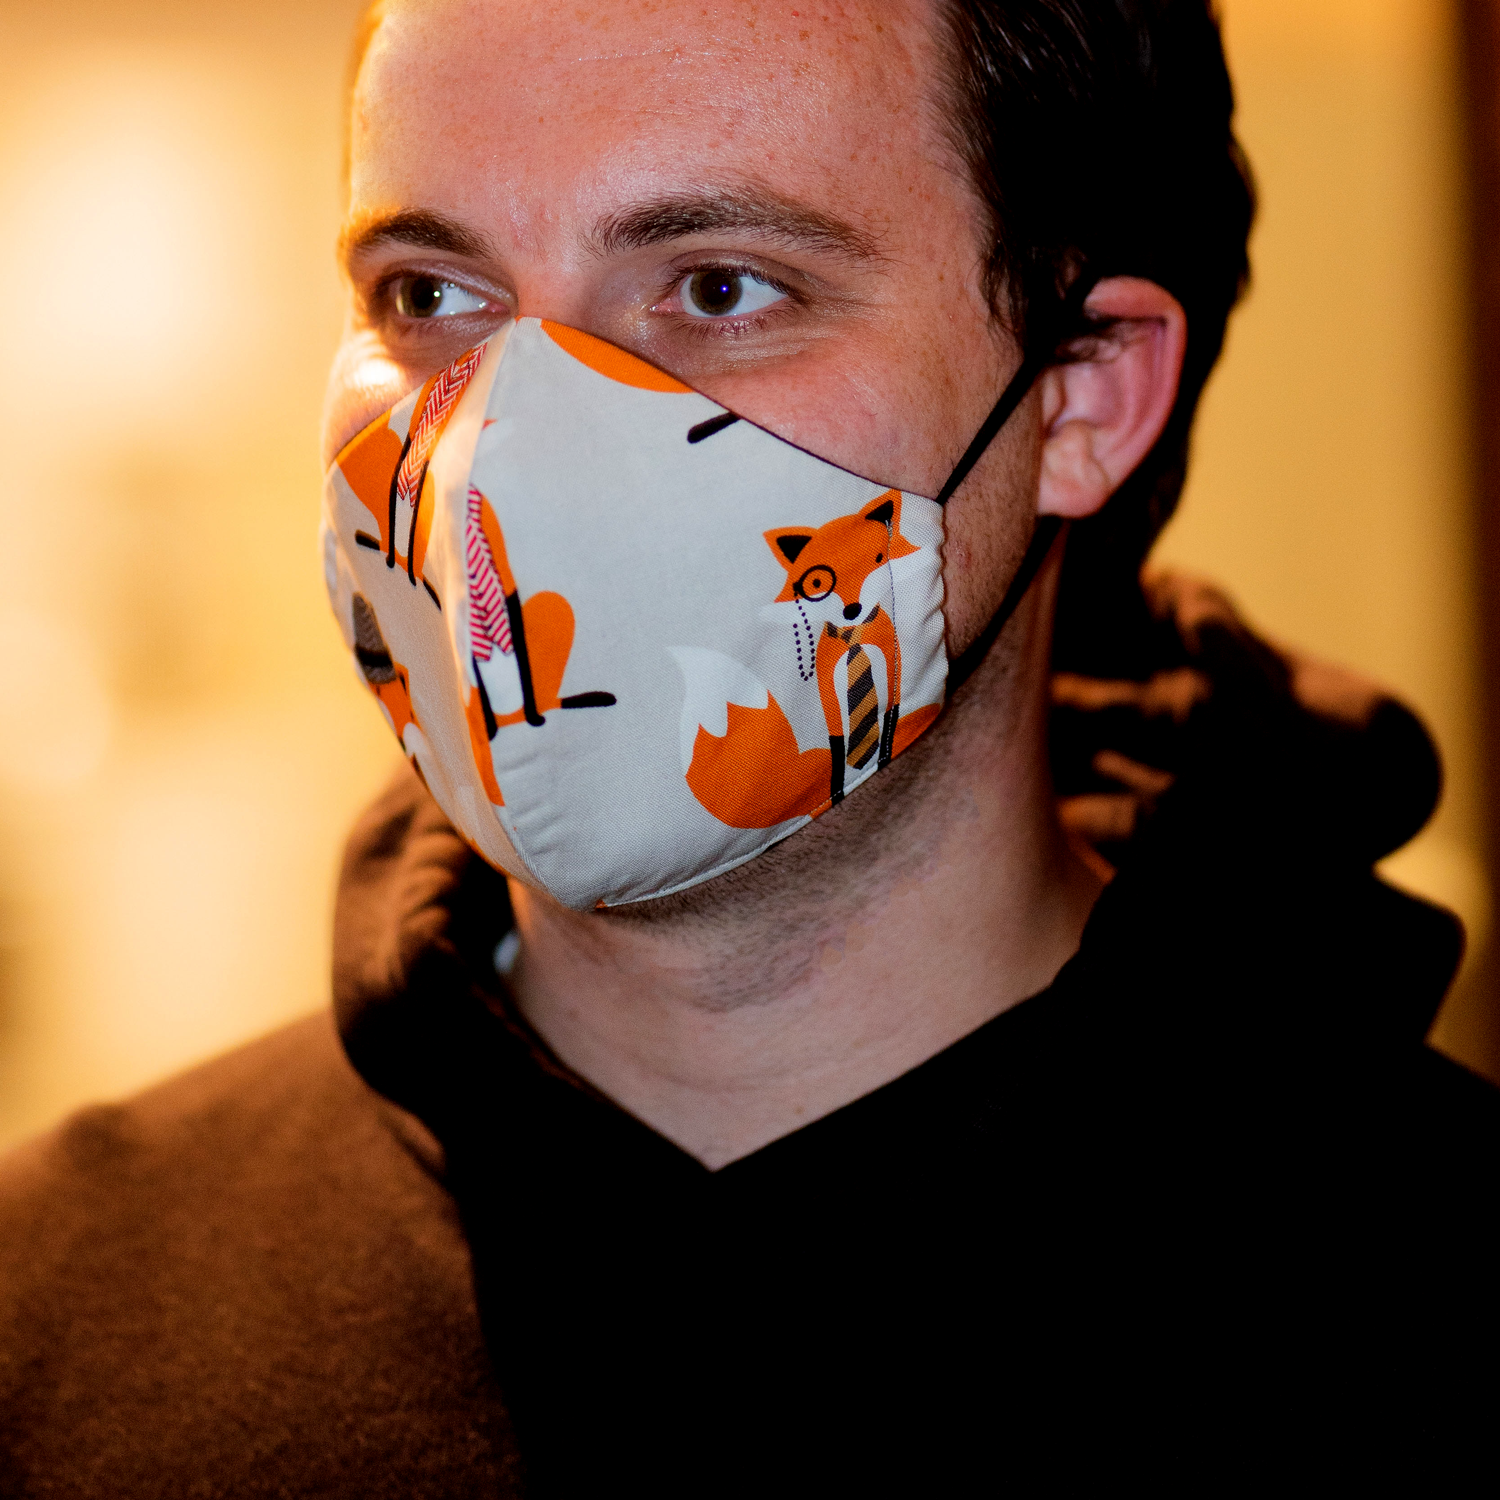 Triple layered face mask made in Melbourne Australia from cotton and poplin featuring a unique fox print. The Tailored Shapely style includes an embedded adjustable nose bridge and a hidden filter pocket.